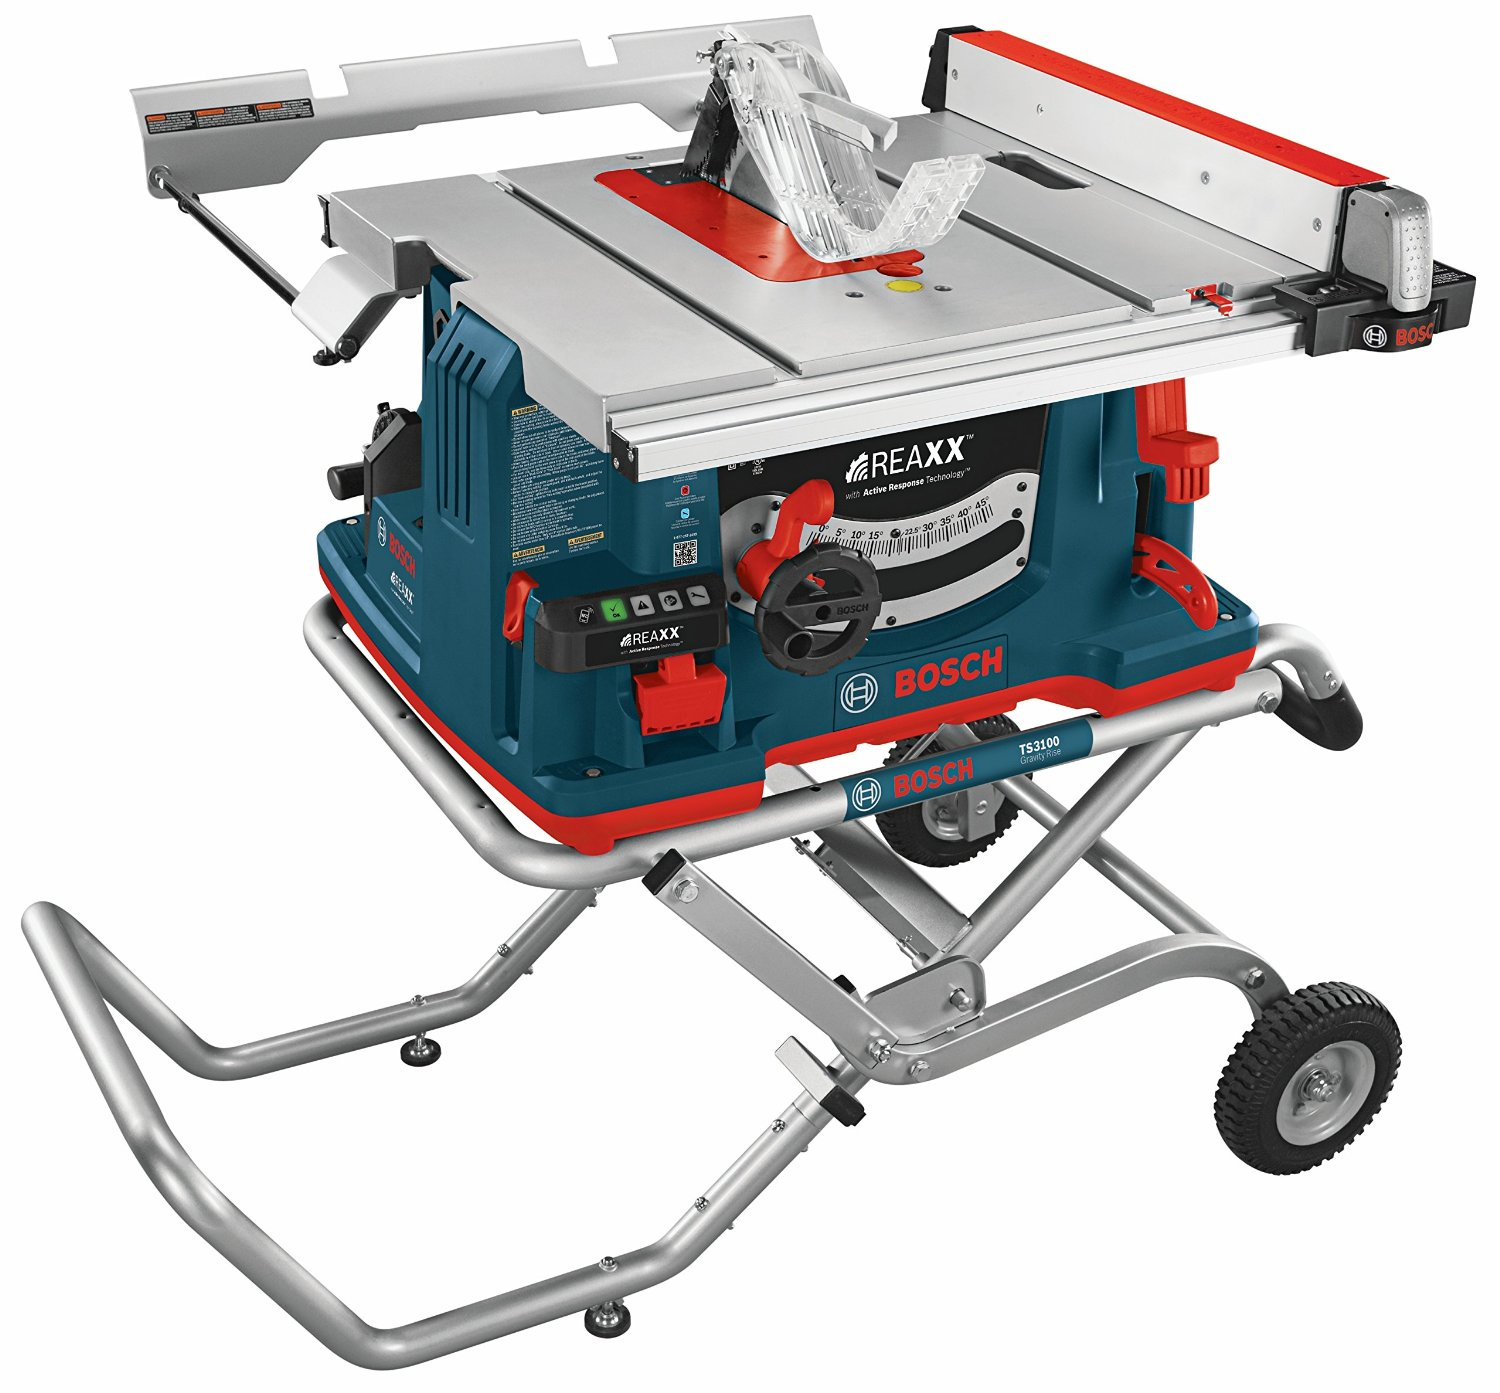 Bosch gts1041a reaxx table saw with active response for 10 table saw harbor freight